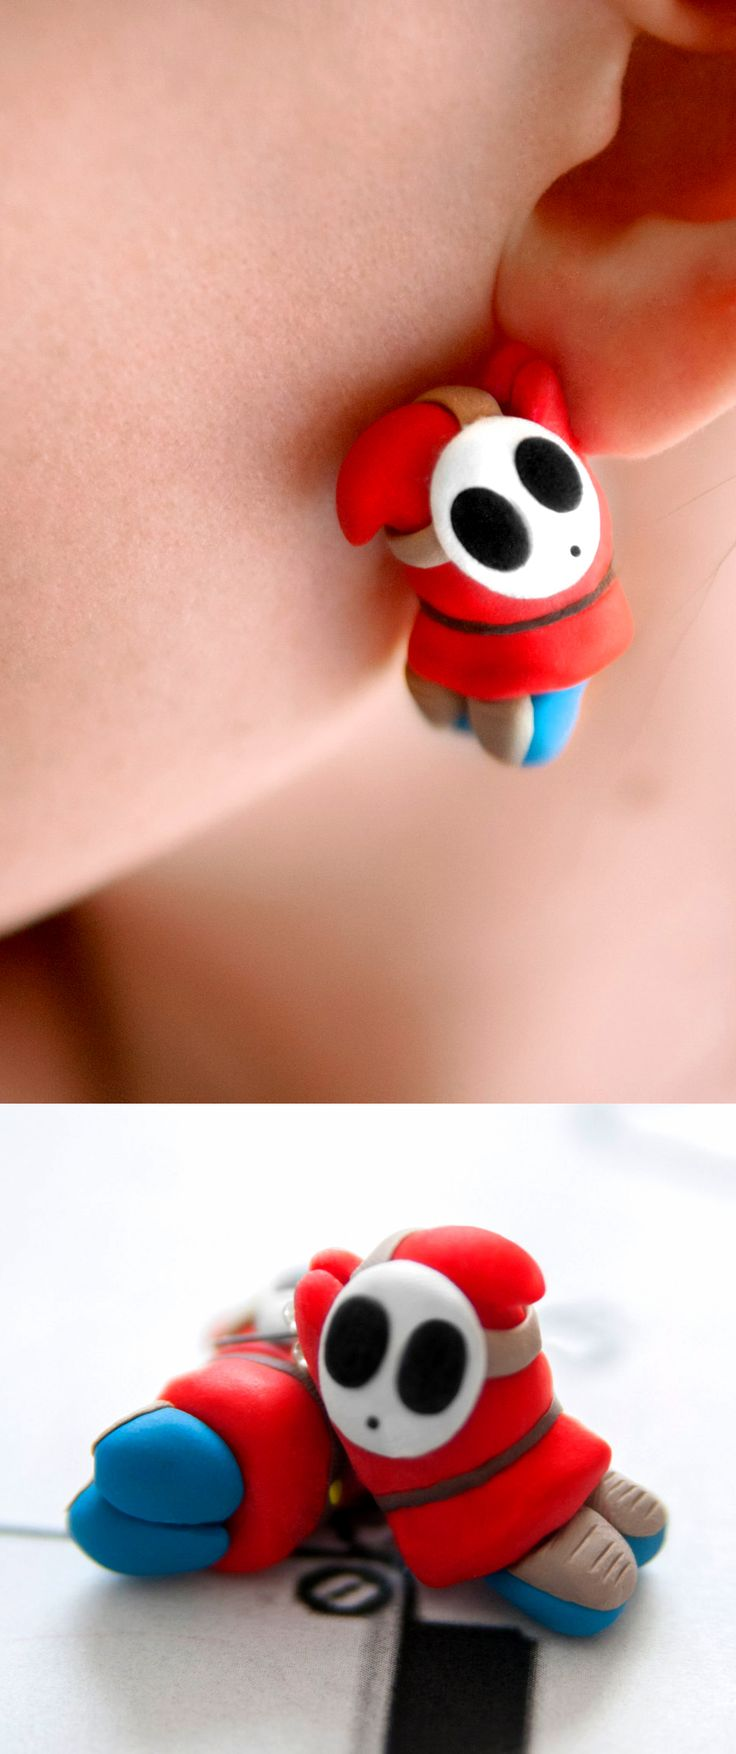 These Shy Guy earrings are a perfect example of the clumsy villain we all know…